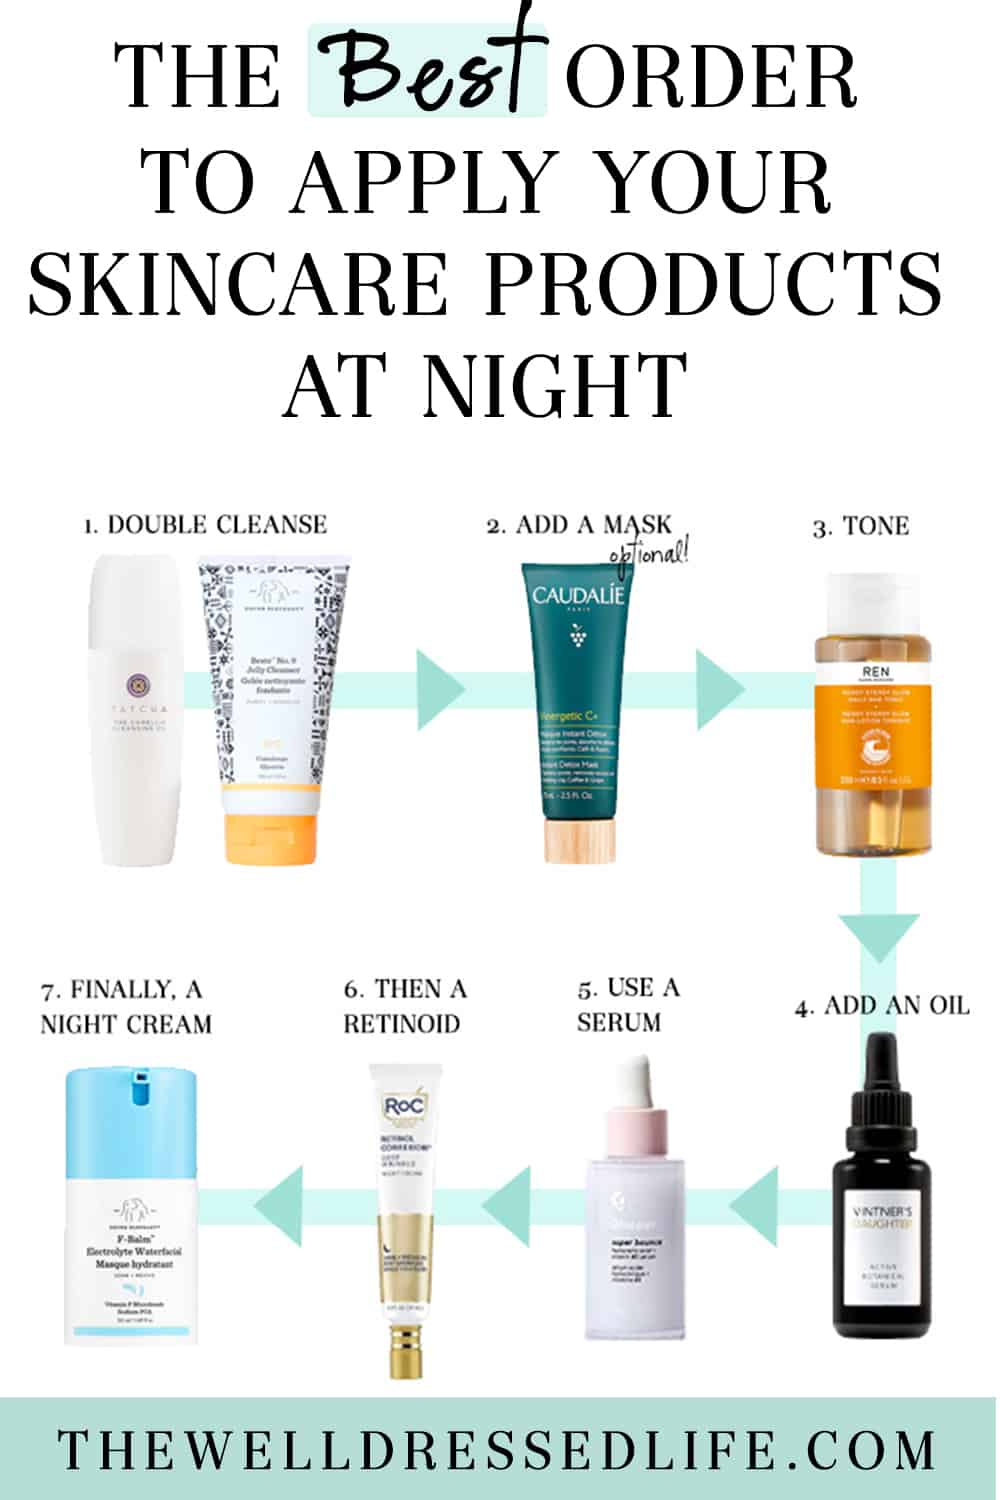 The Best Order to Apply Skincare Products at Night